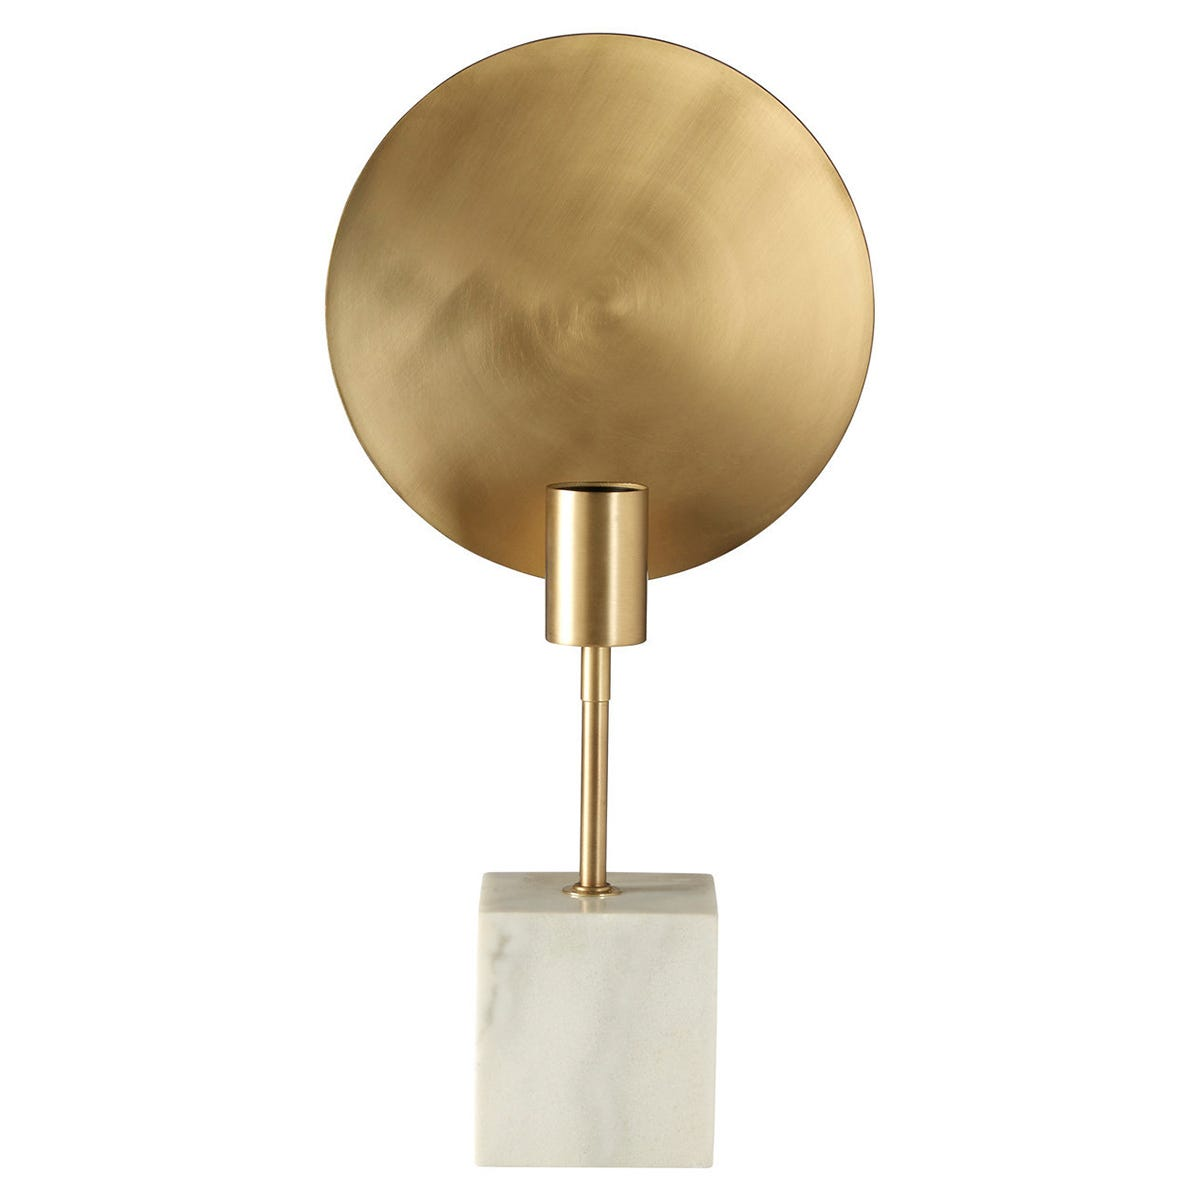 Interiors By Premier Table Lamp - Brushed Brass Finish/White Marble